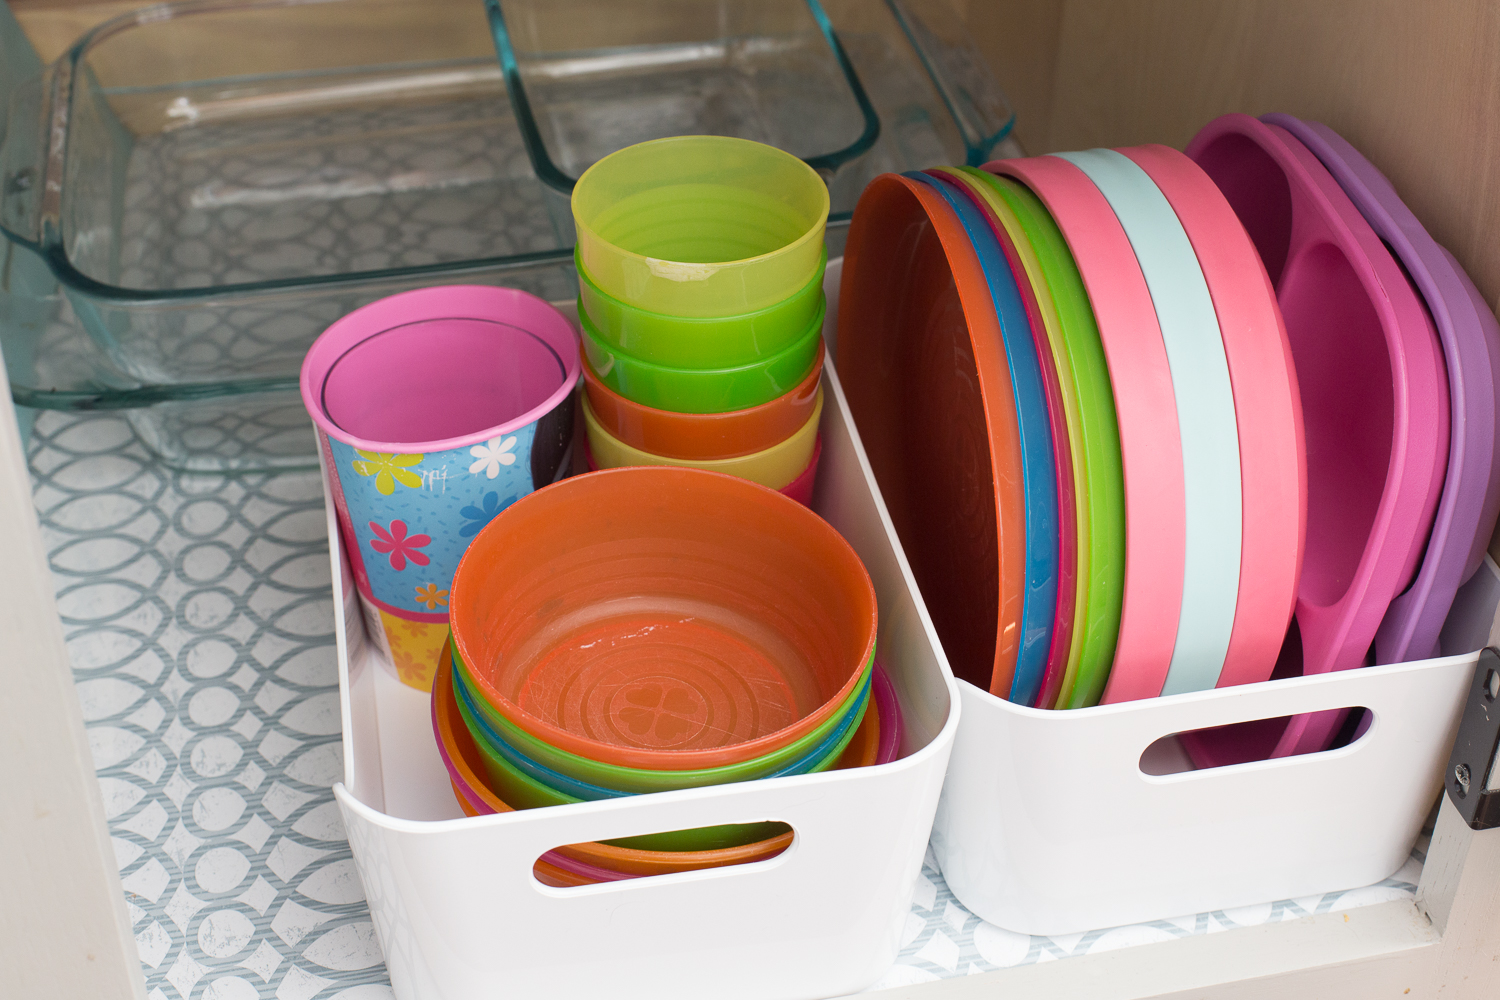 Tips for organizing the kitchen cabinets and drawers once and for all